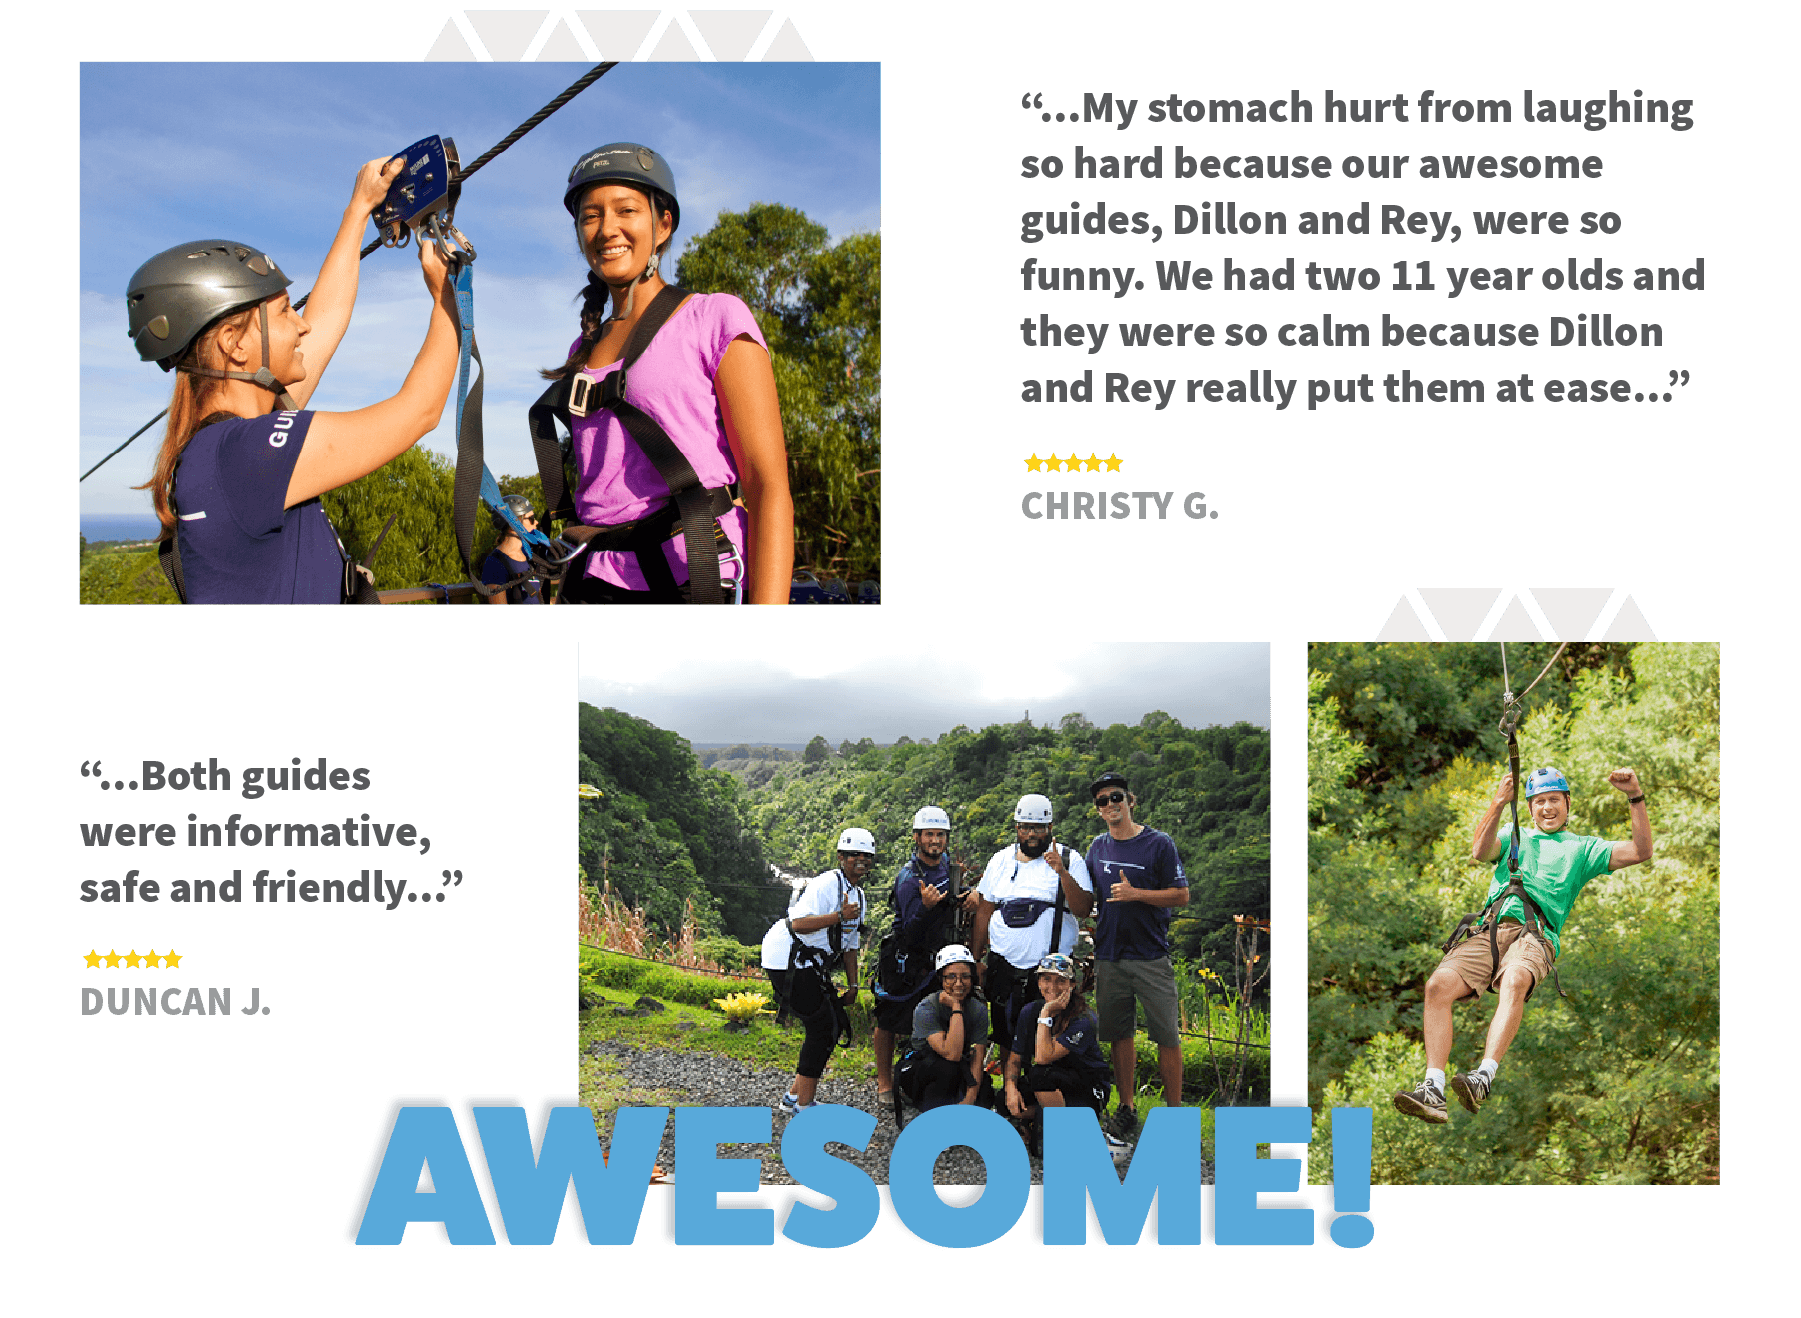 Our zipline guides are awesome